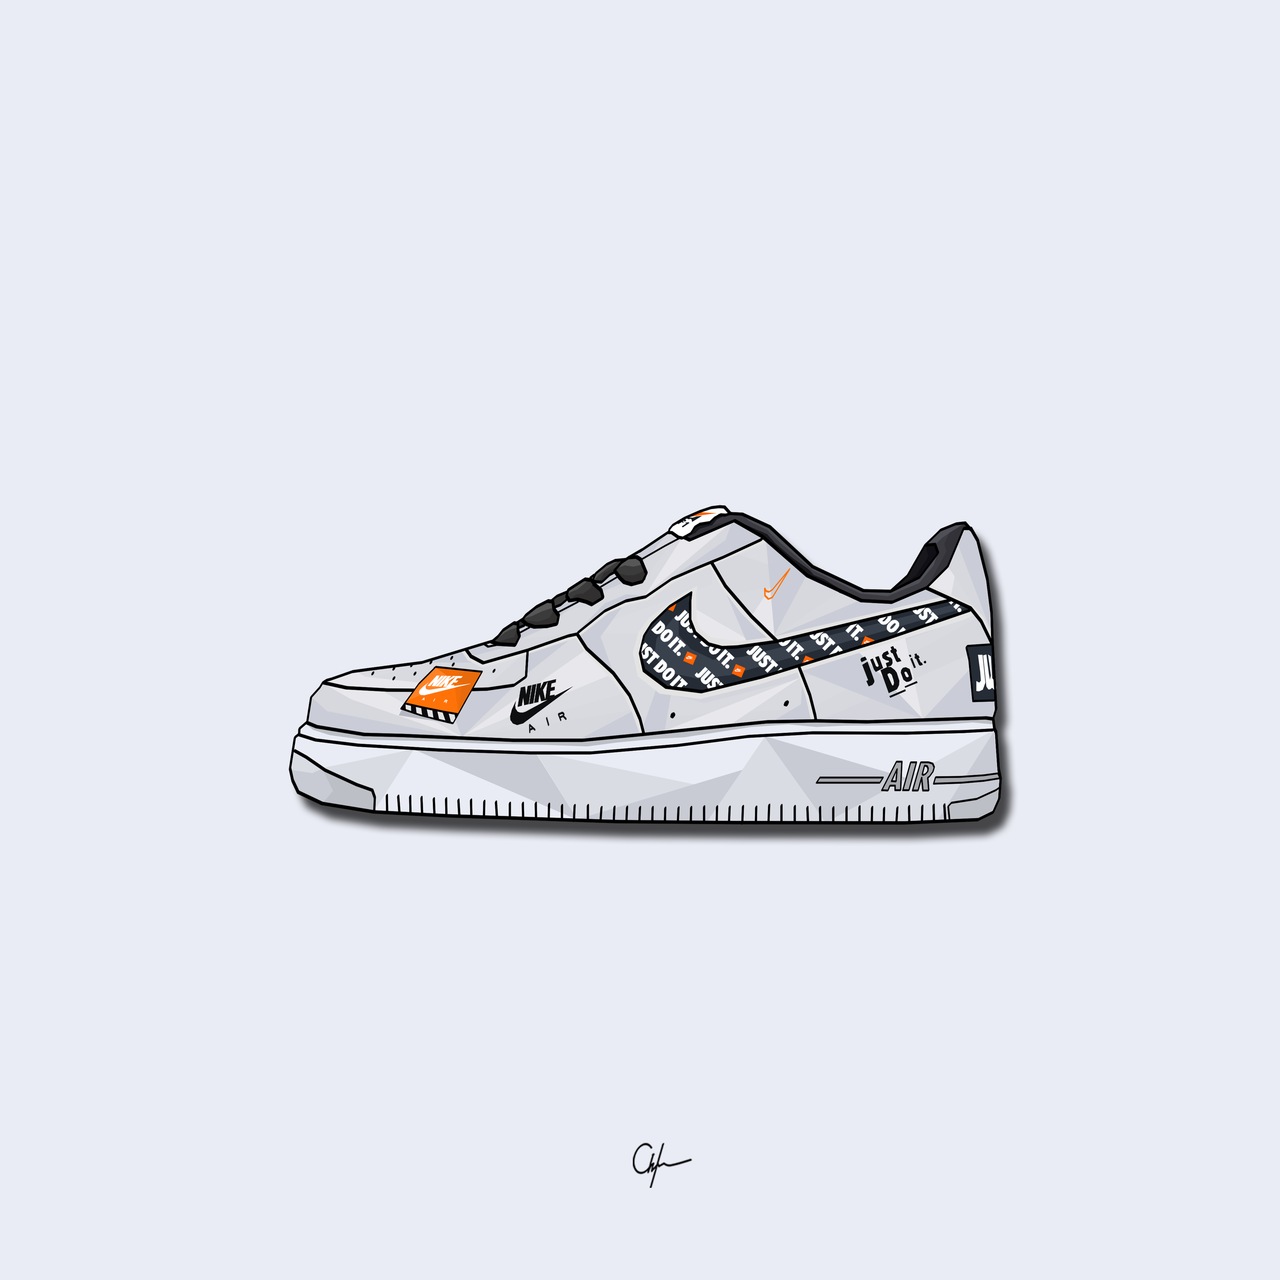 Nike Air Force 1 Just Do It White Edition Younmarx Nike Art Sneakers Illustration Sneakers Wallpaper